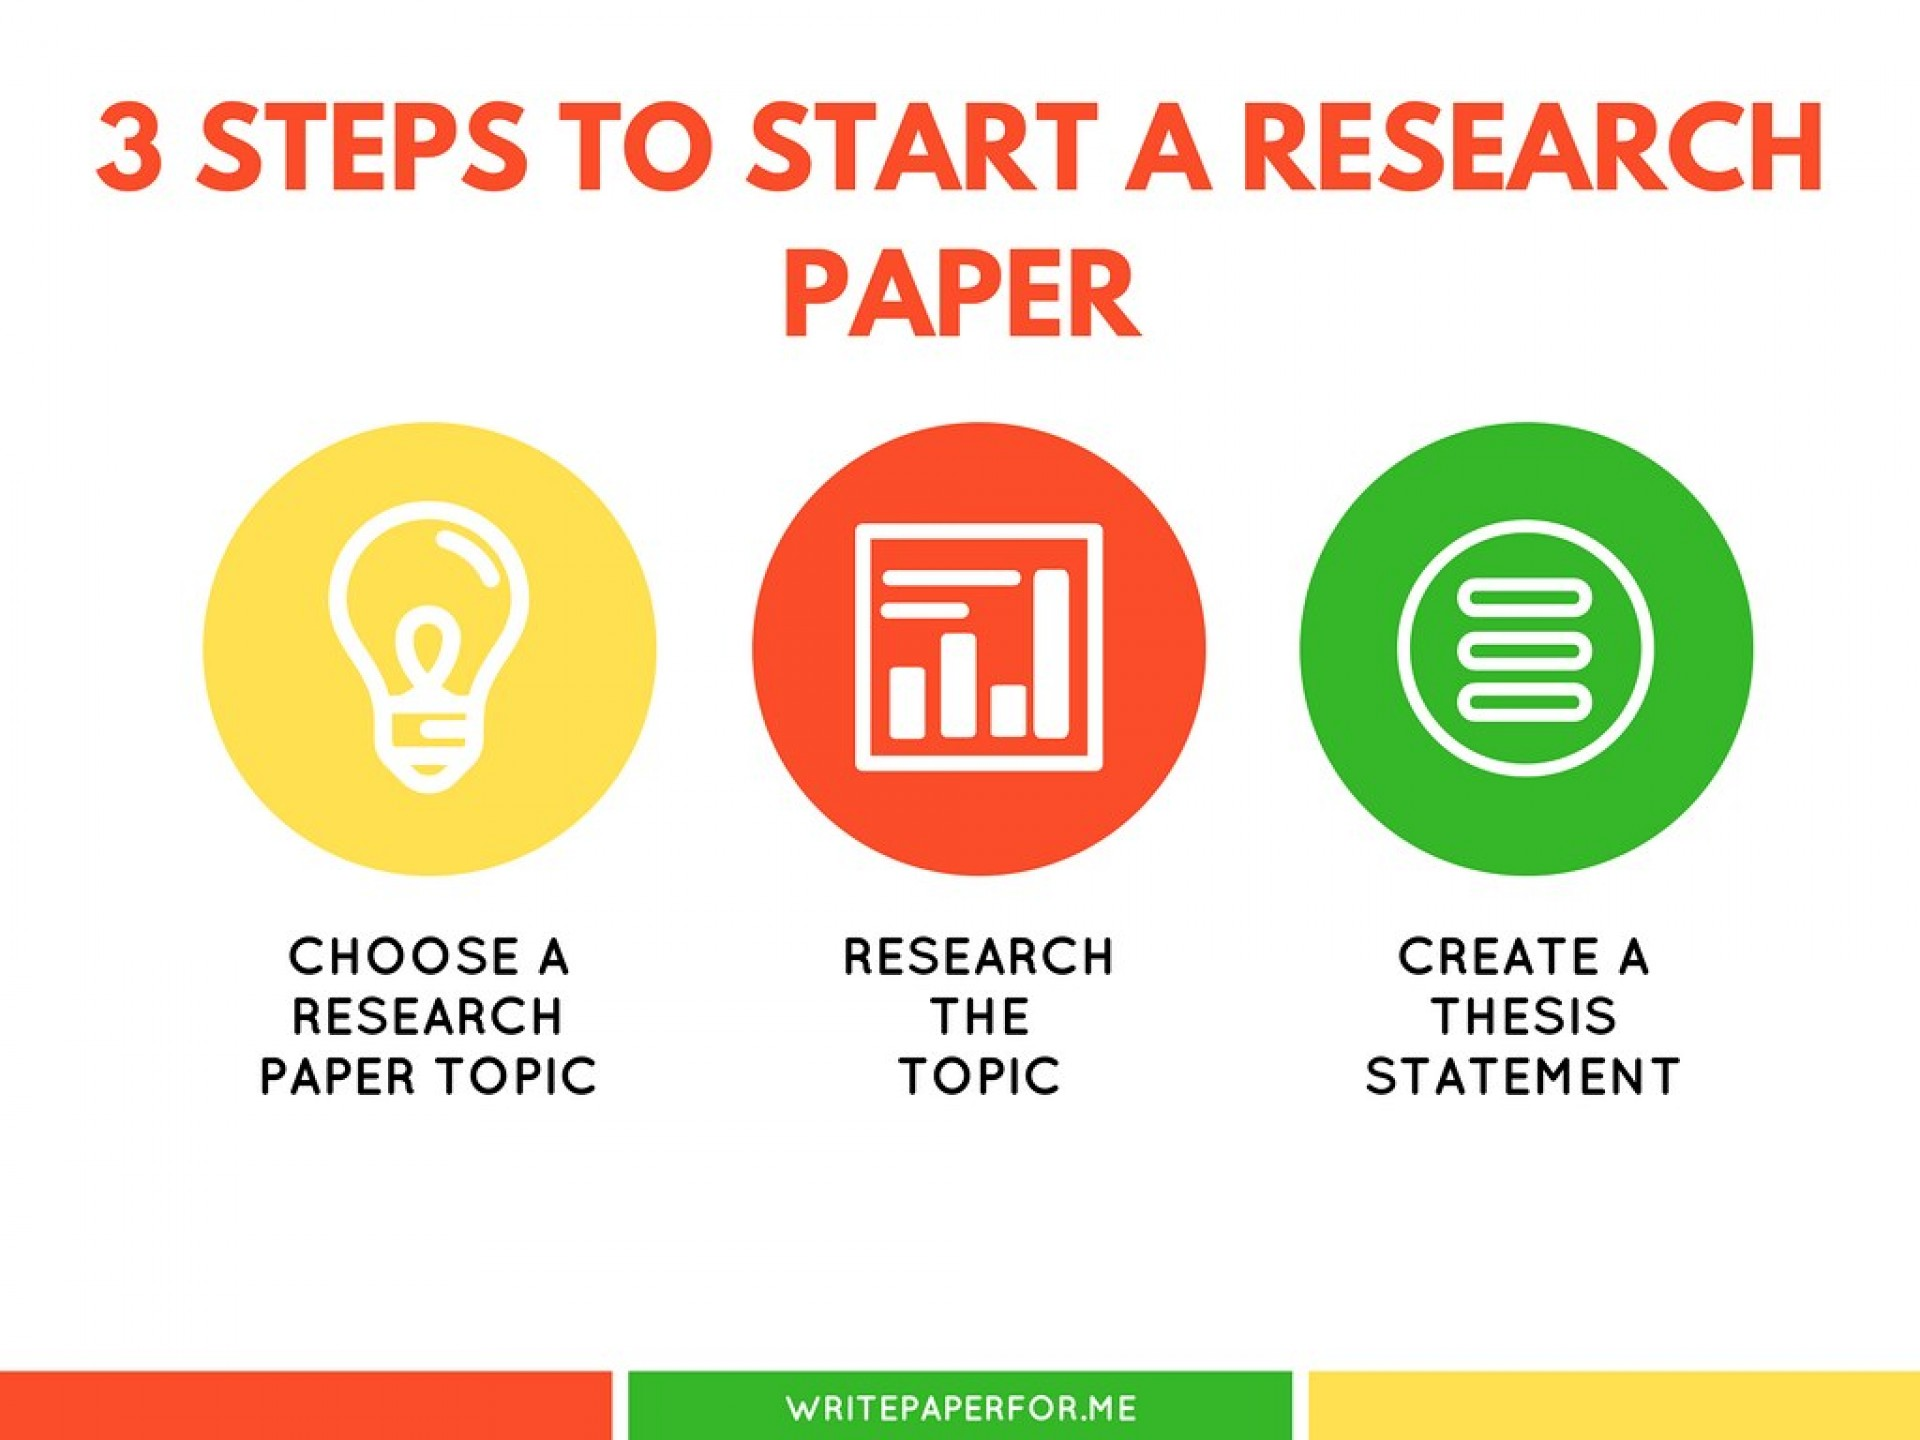 004 Research Paper 44059860914 0a9ff0d74e B How To Start Beautiful A Write Introduction Paragraph Proposal Mla 1920